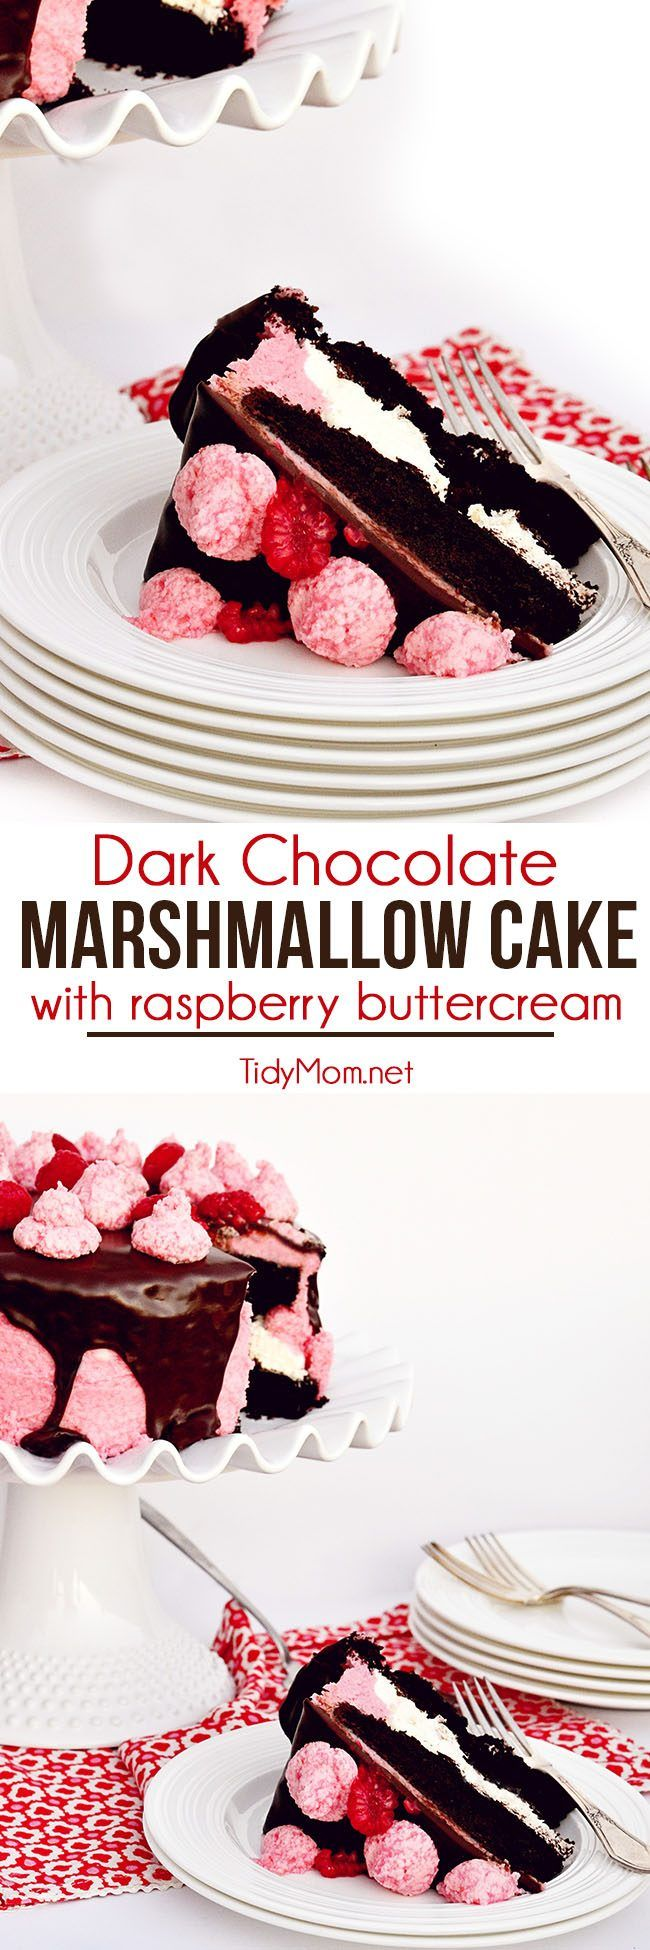 Dark Chocolate Covered Marshmallow Cake with Raspberry Buttercream is a delicious combination for a baby shower, birthday party, and perfect for Valentine's Day. Get the full printable recipe at TidyMom.net